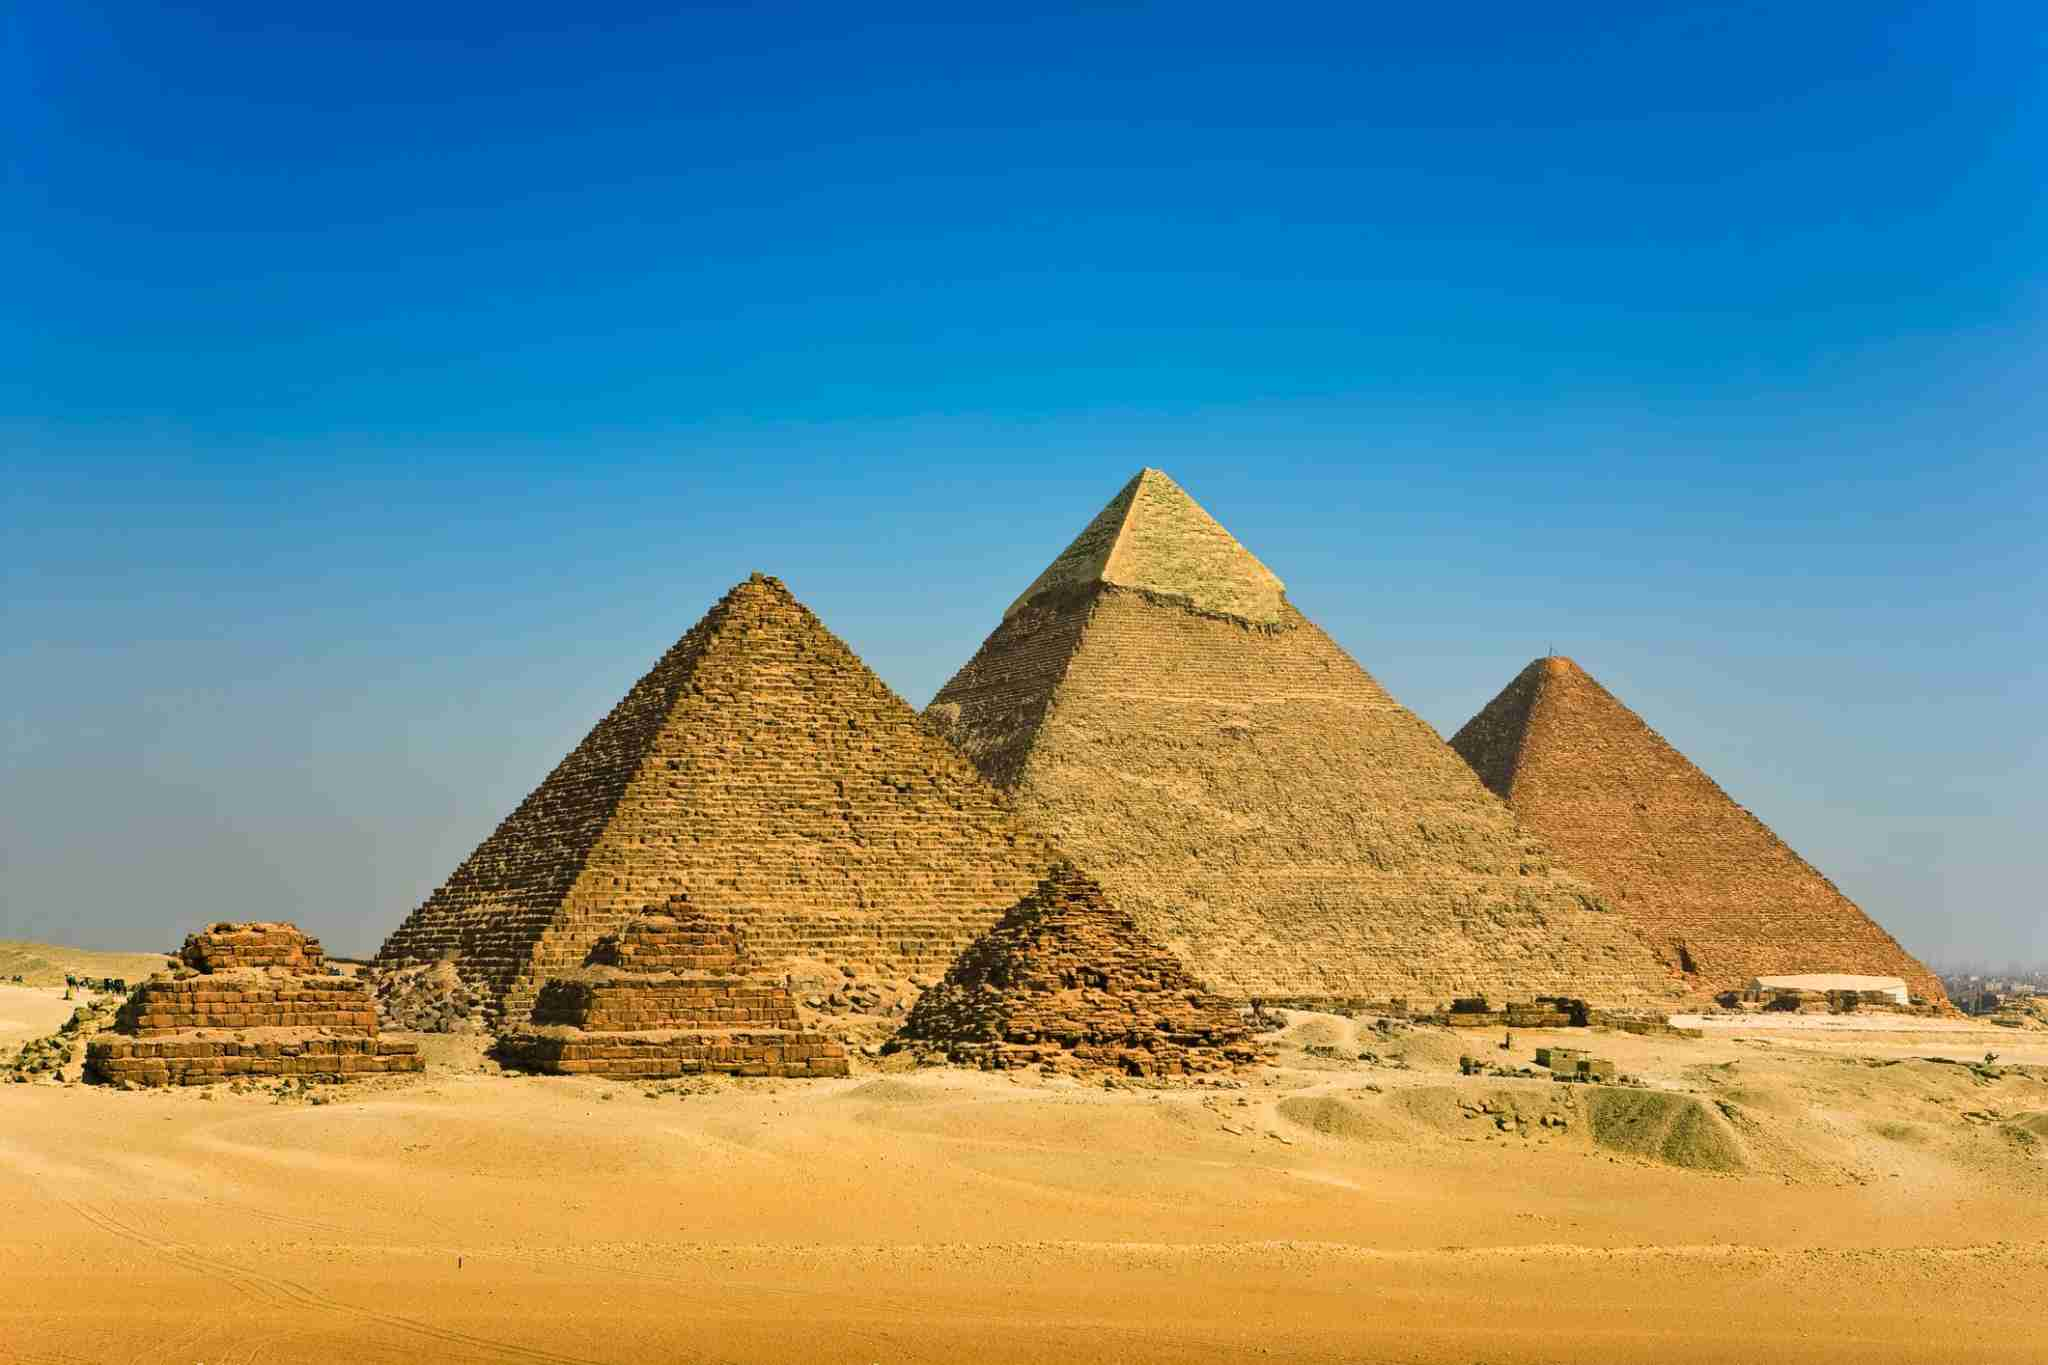 The Pyramids of Giza (Photo by